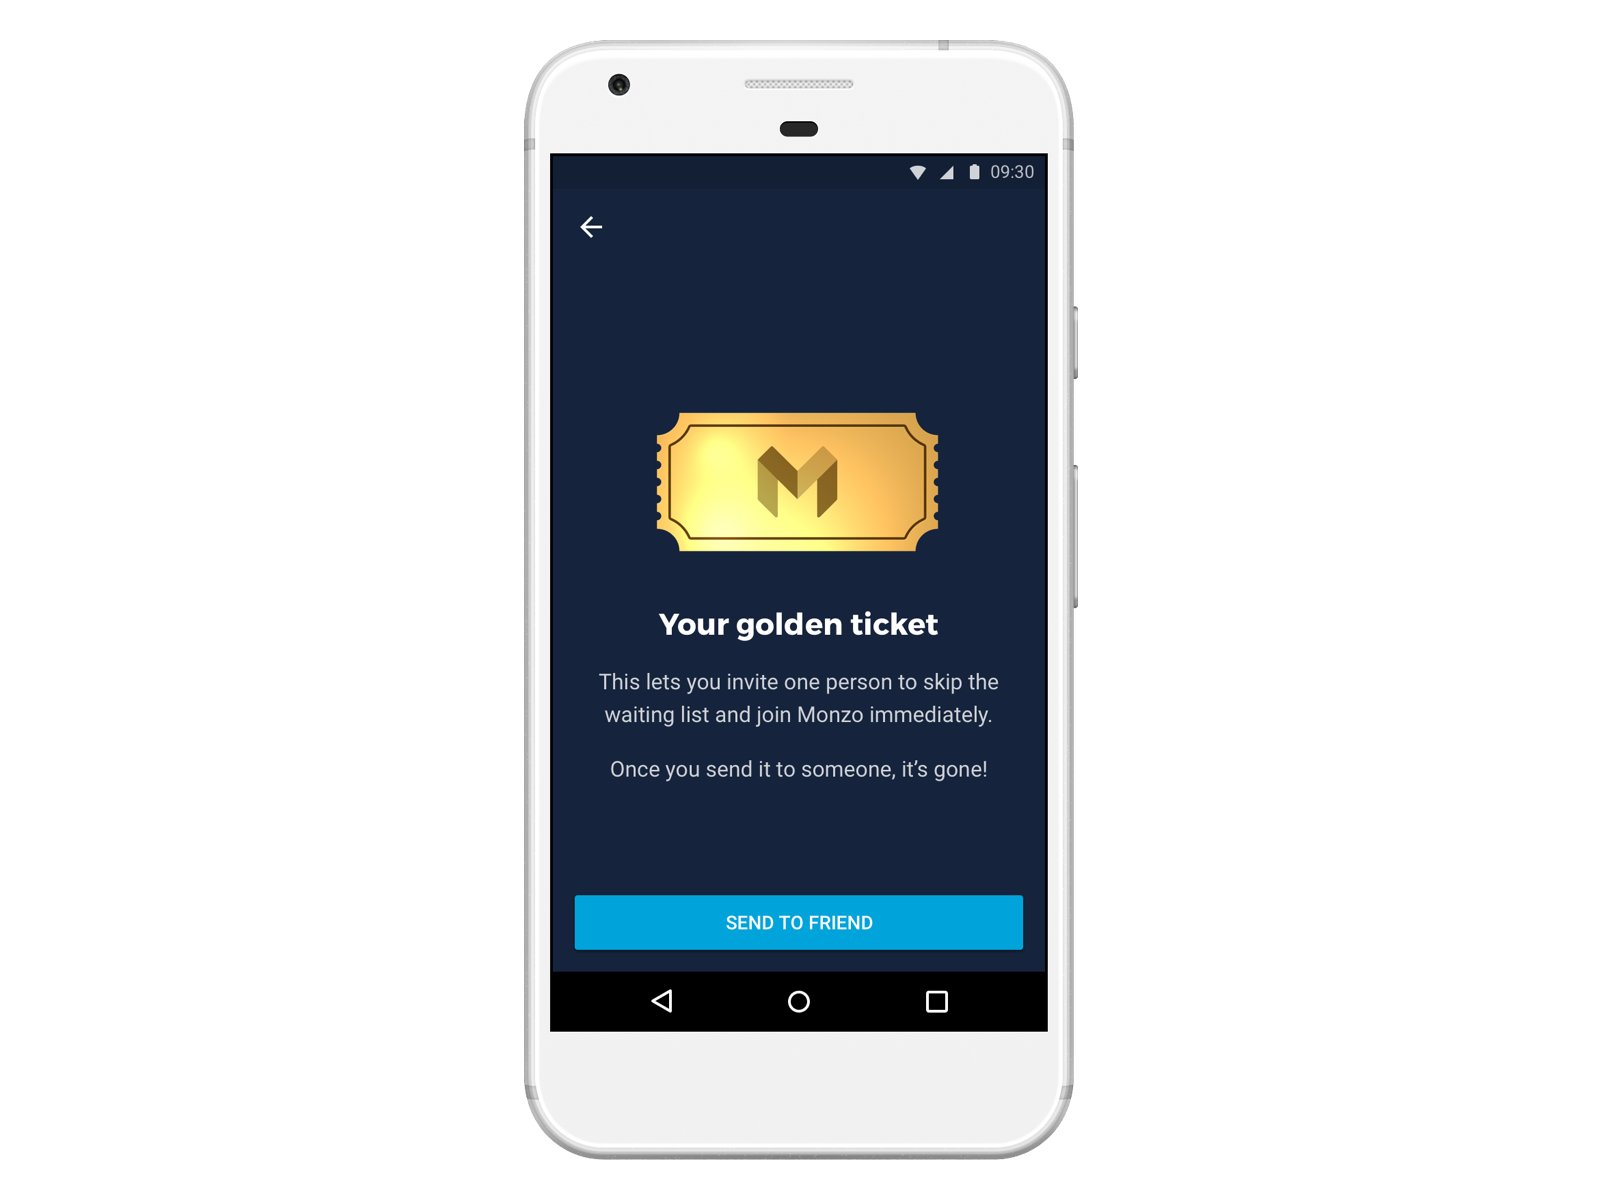 Monzo: A Guide to Building the Digital Bank of the Future